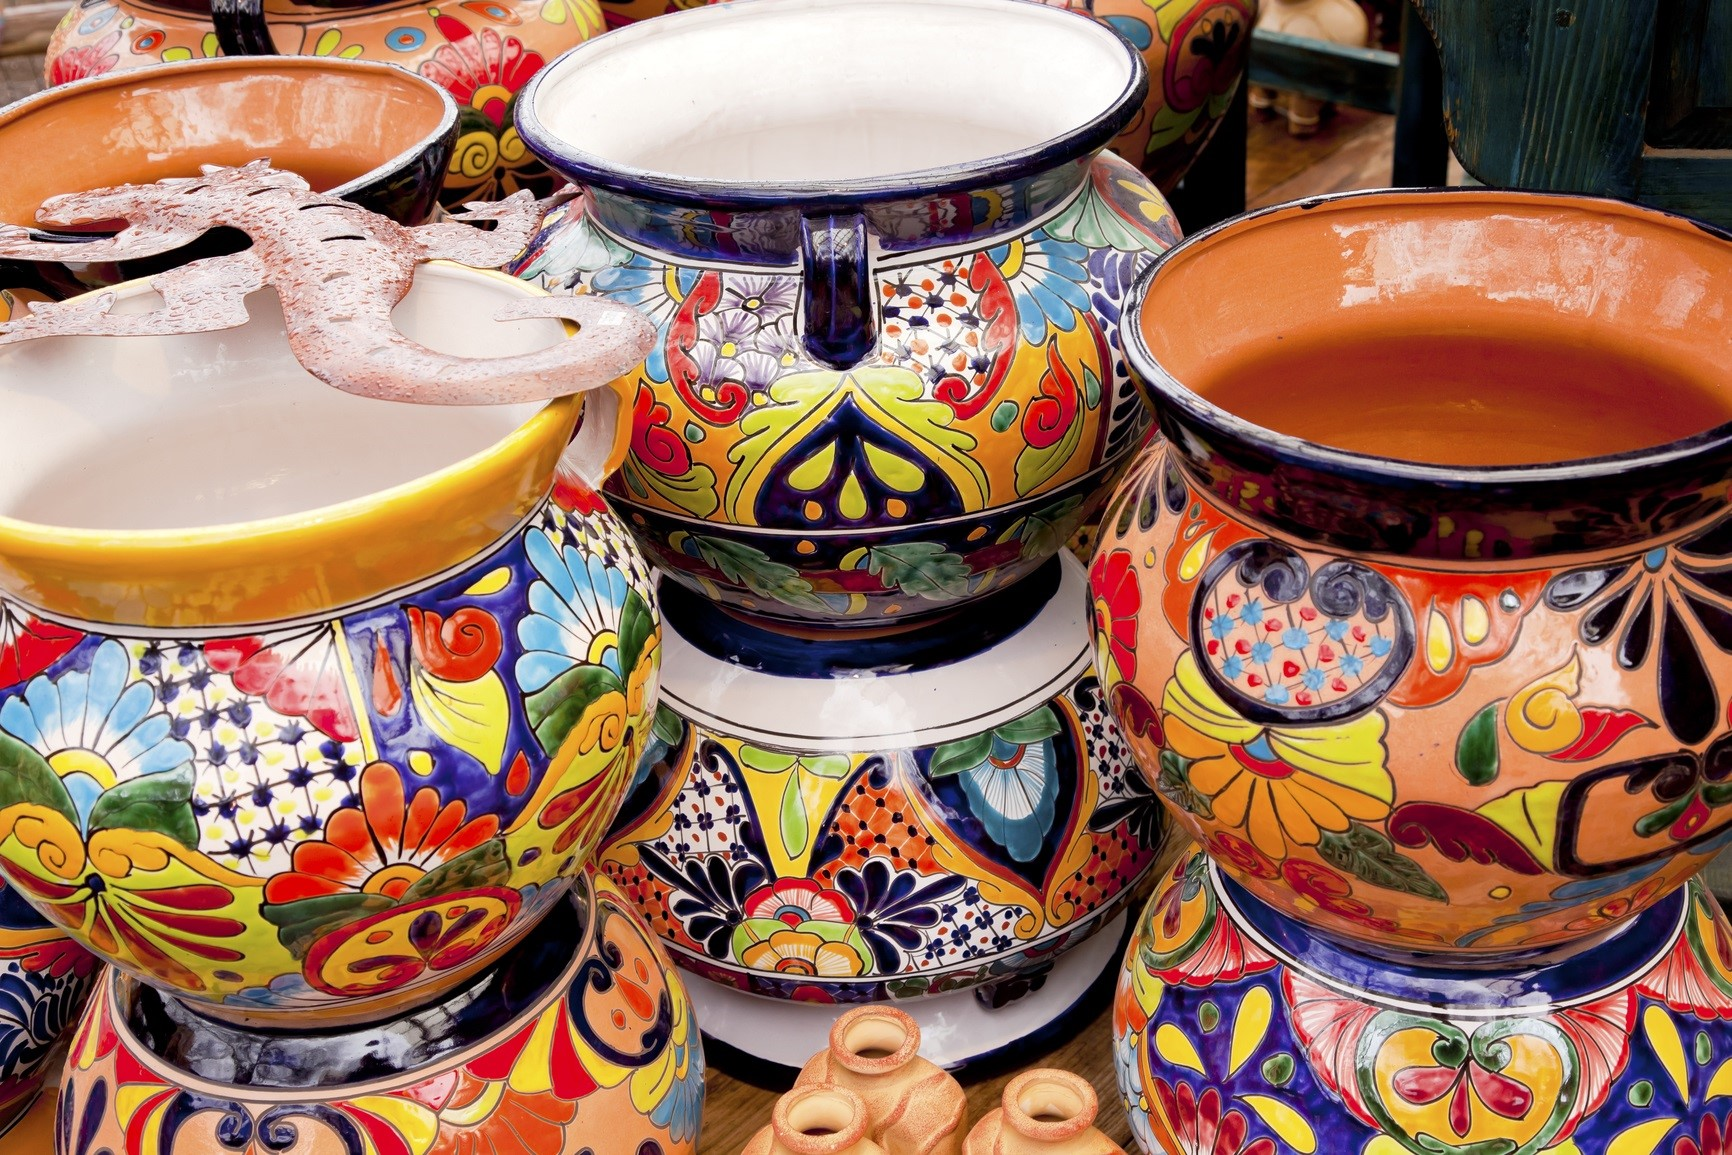 Arts and Crafts - Mexican Colorful Souvenir Ceramic Pots Sedona Arizona